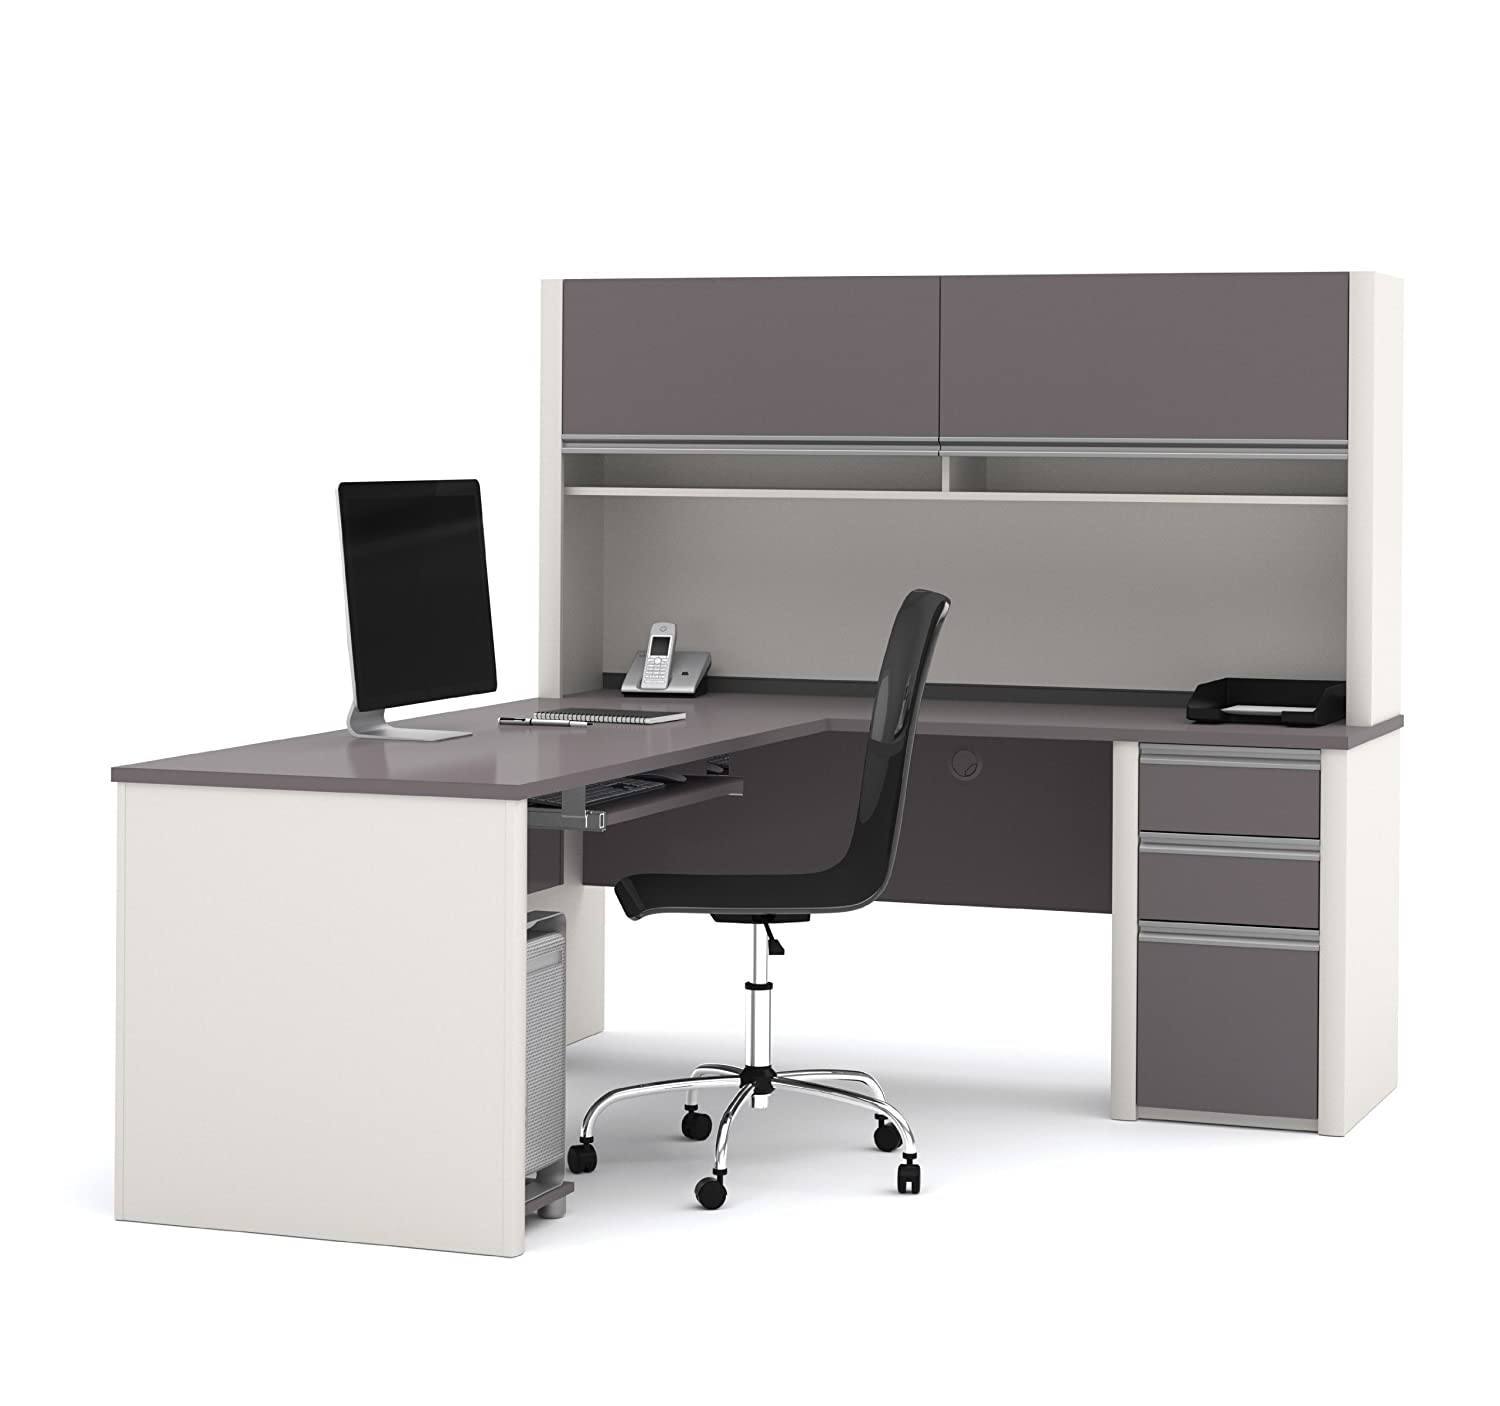 hutch desk imageservice grey shaped home and itemid shape lateral profileid ideas file recipename l commercial with design sutton